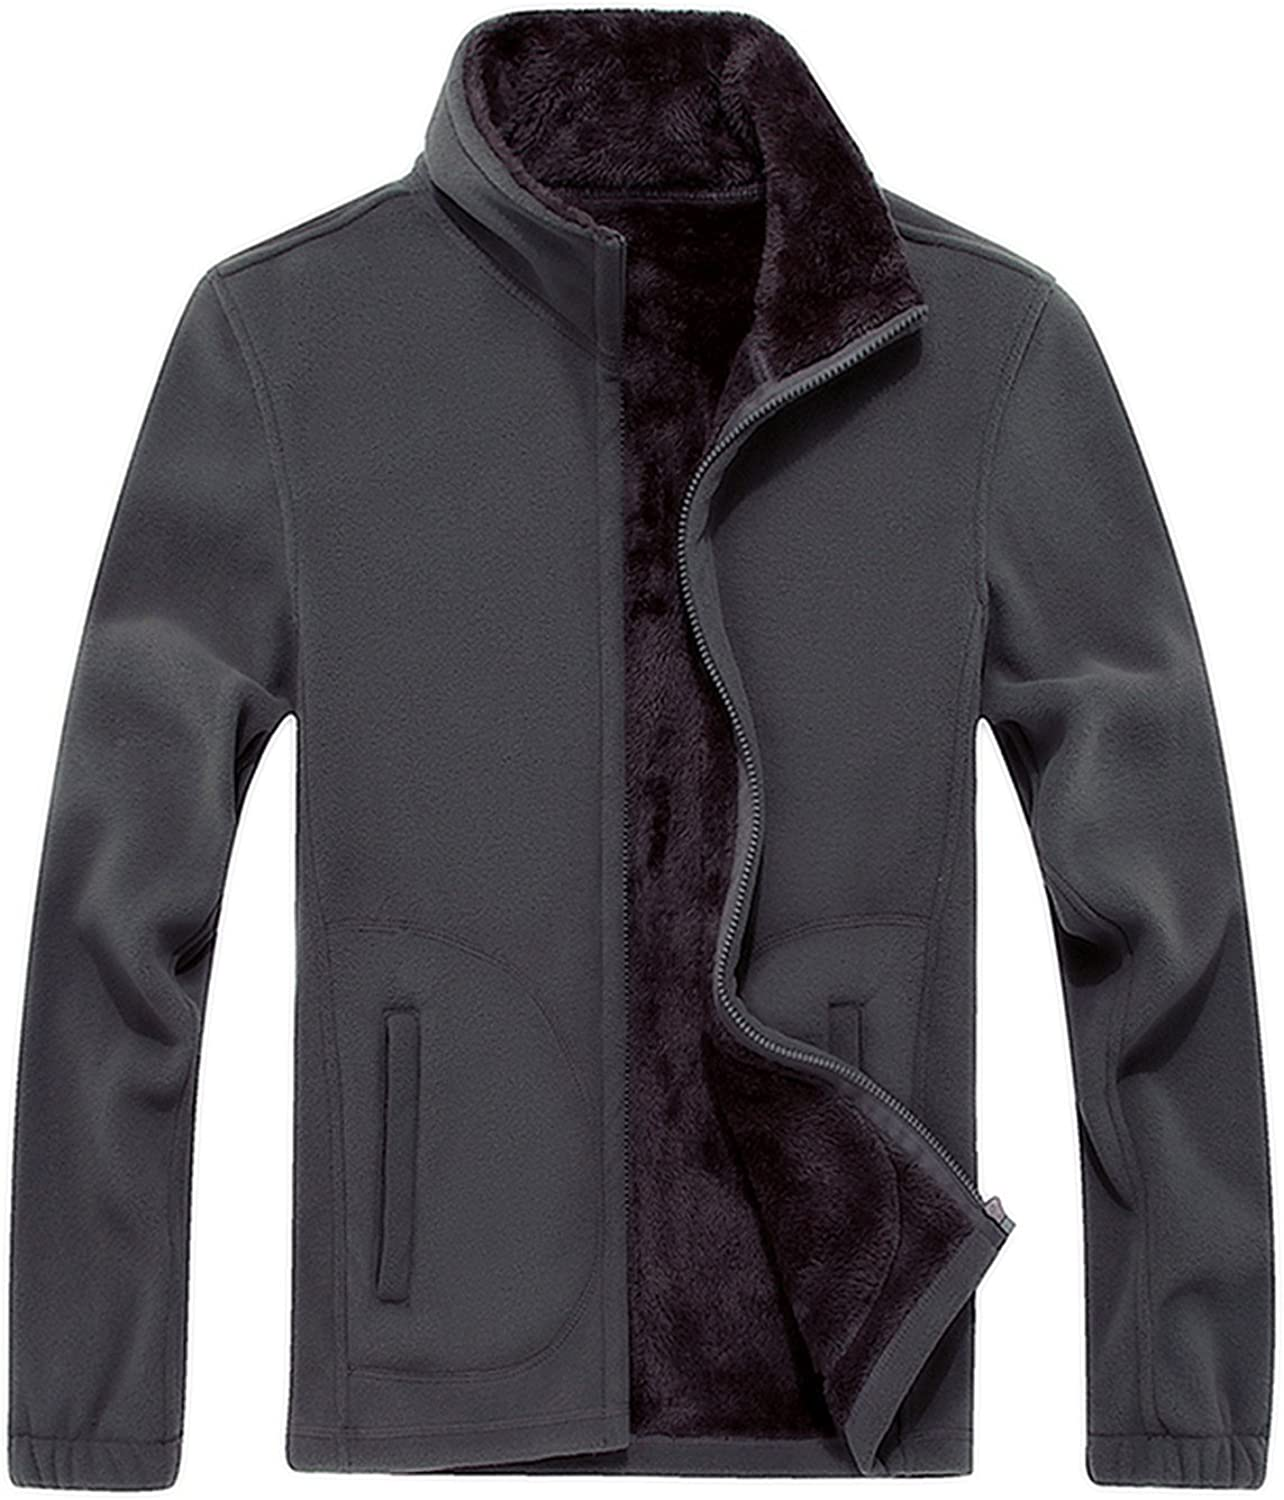 Olive Tayl Winter Male Jackets for Men Coat Outerwear Thick Warm Velvet Casual Fleece Big Size XL-8XL